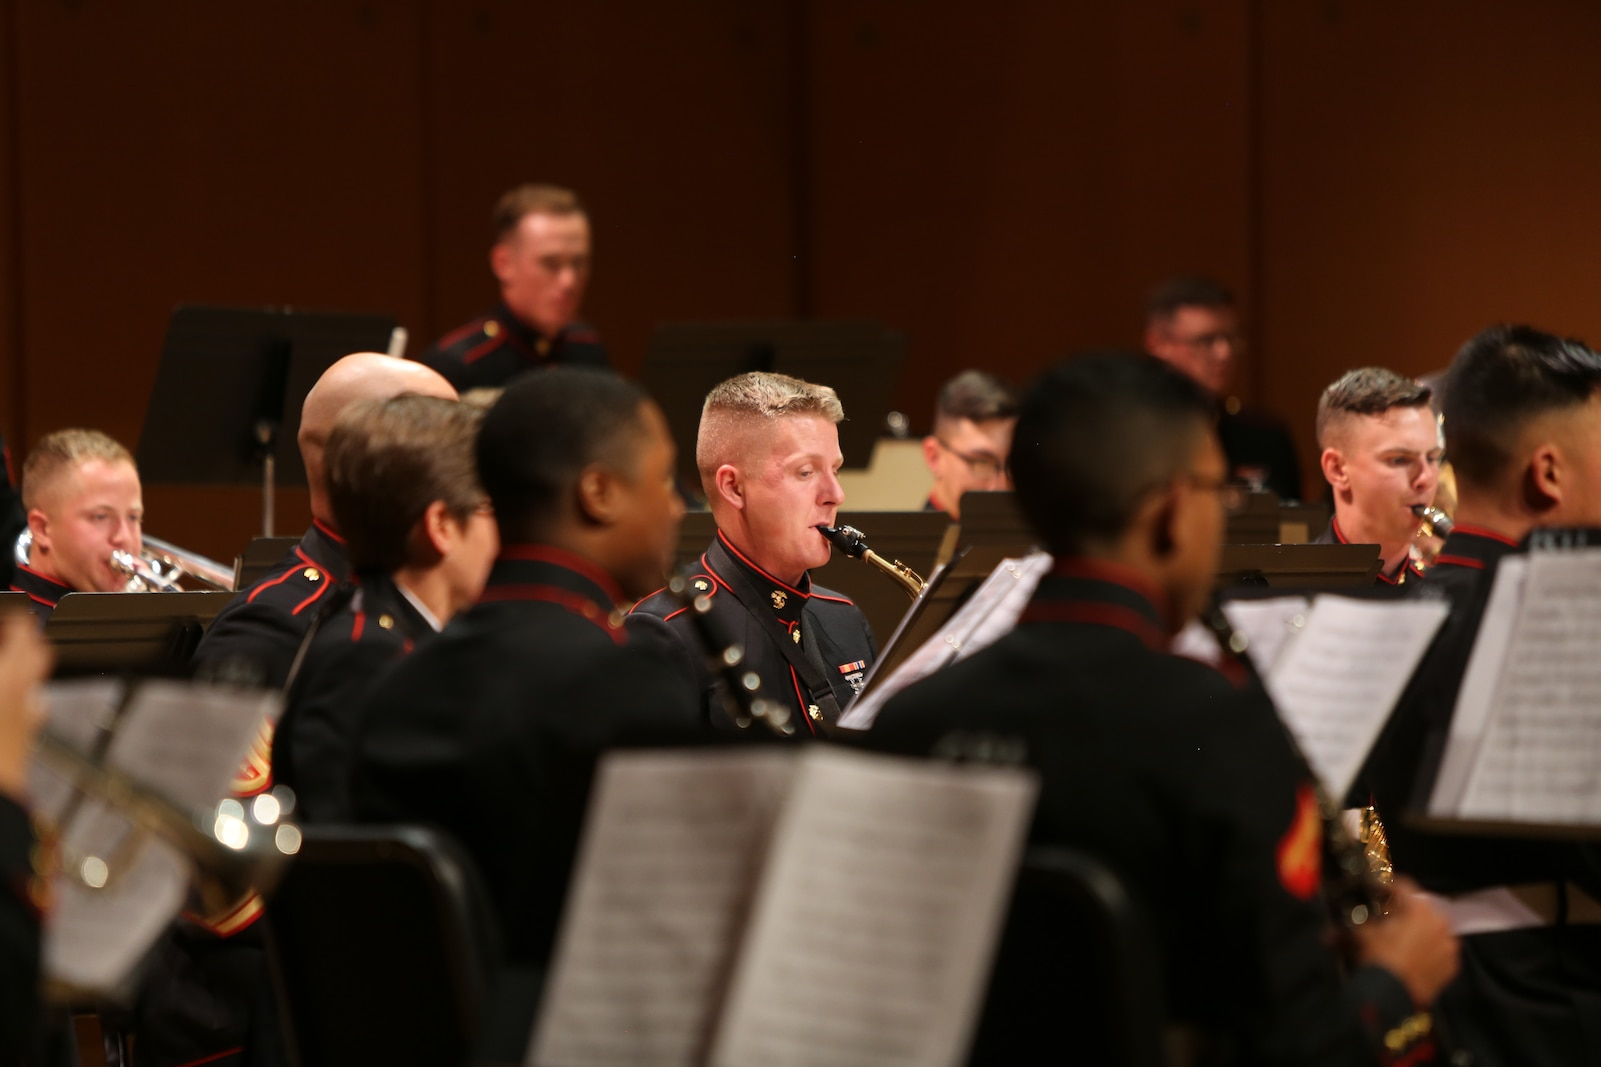 Corporal Trent Larson, a musician with Marine Band San Diego, performs at Huntington North High School during a tour of the Midwest. The band is consists of 50 Marines, with each musician playing in multiple other ensembles. The band performs every Friday at Marine Corps Recruit Depot San Diego, California when they are not on tour. (Official U.S. Marine Corps photo by Sgt Calvin Hilt)